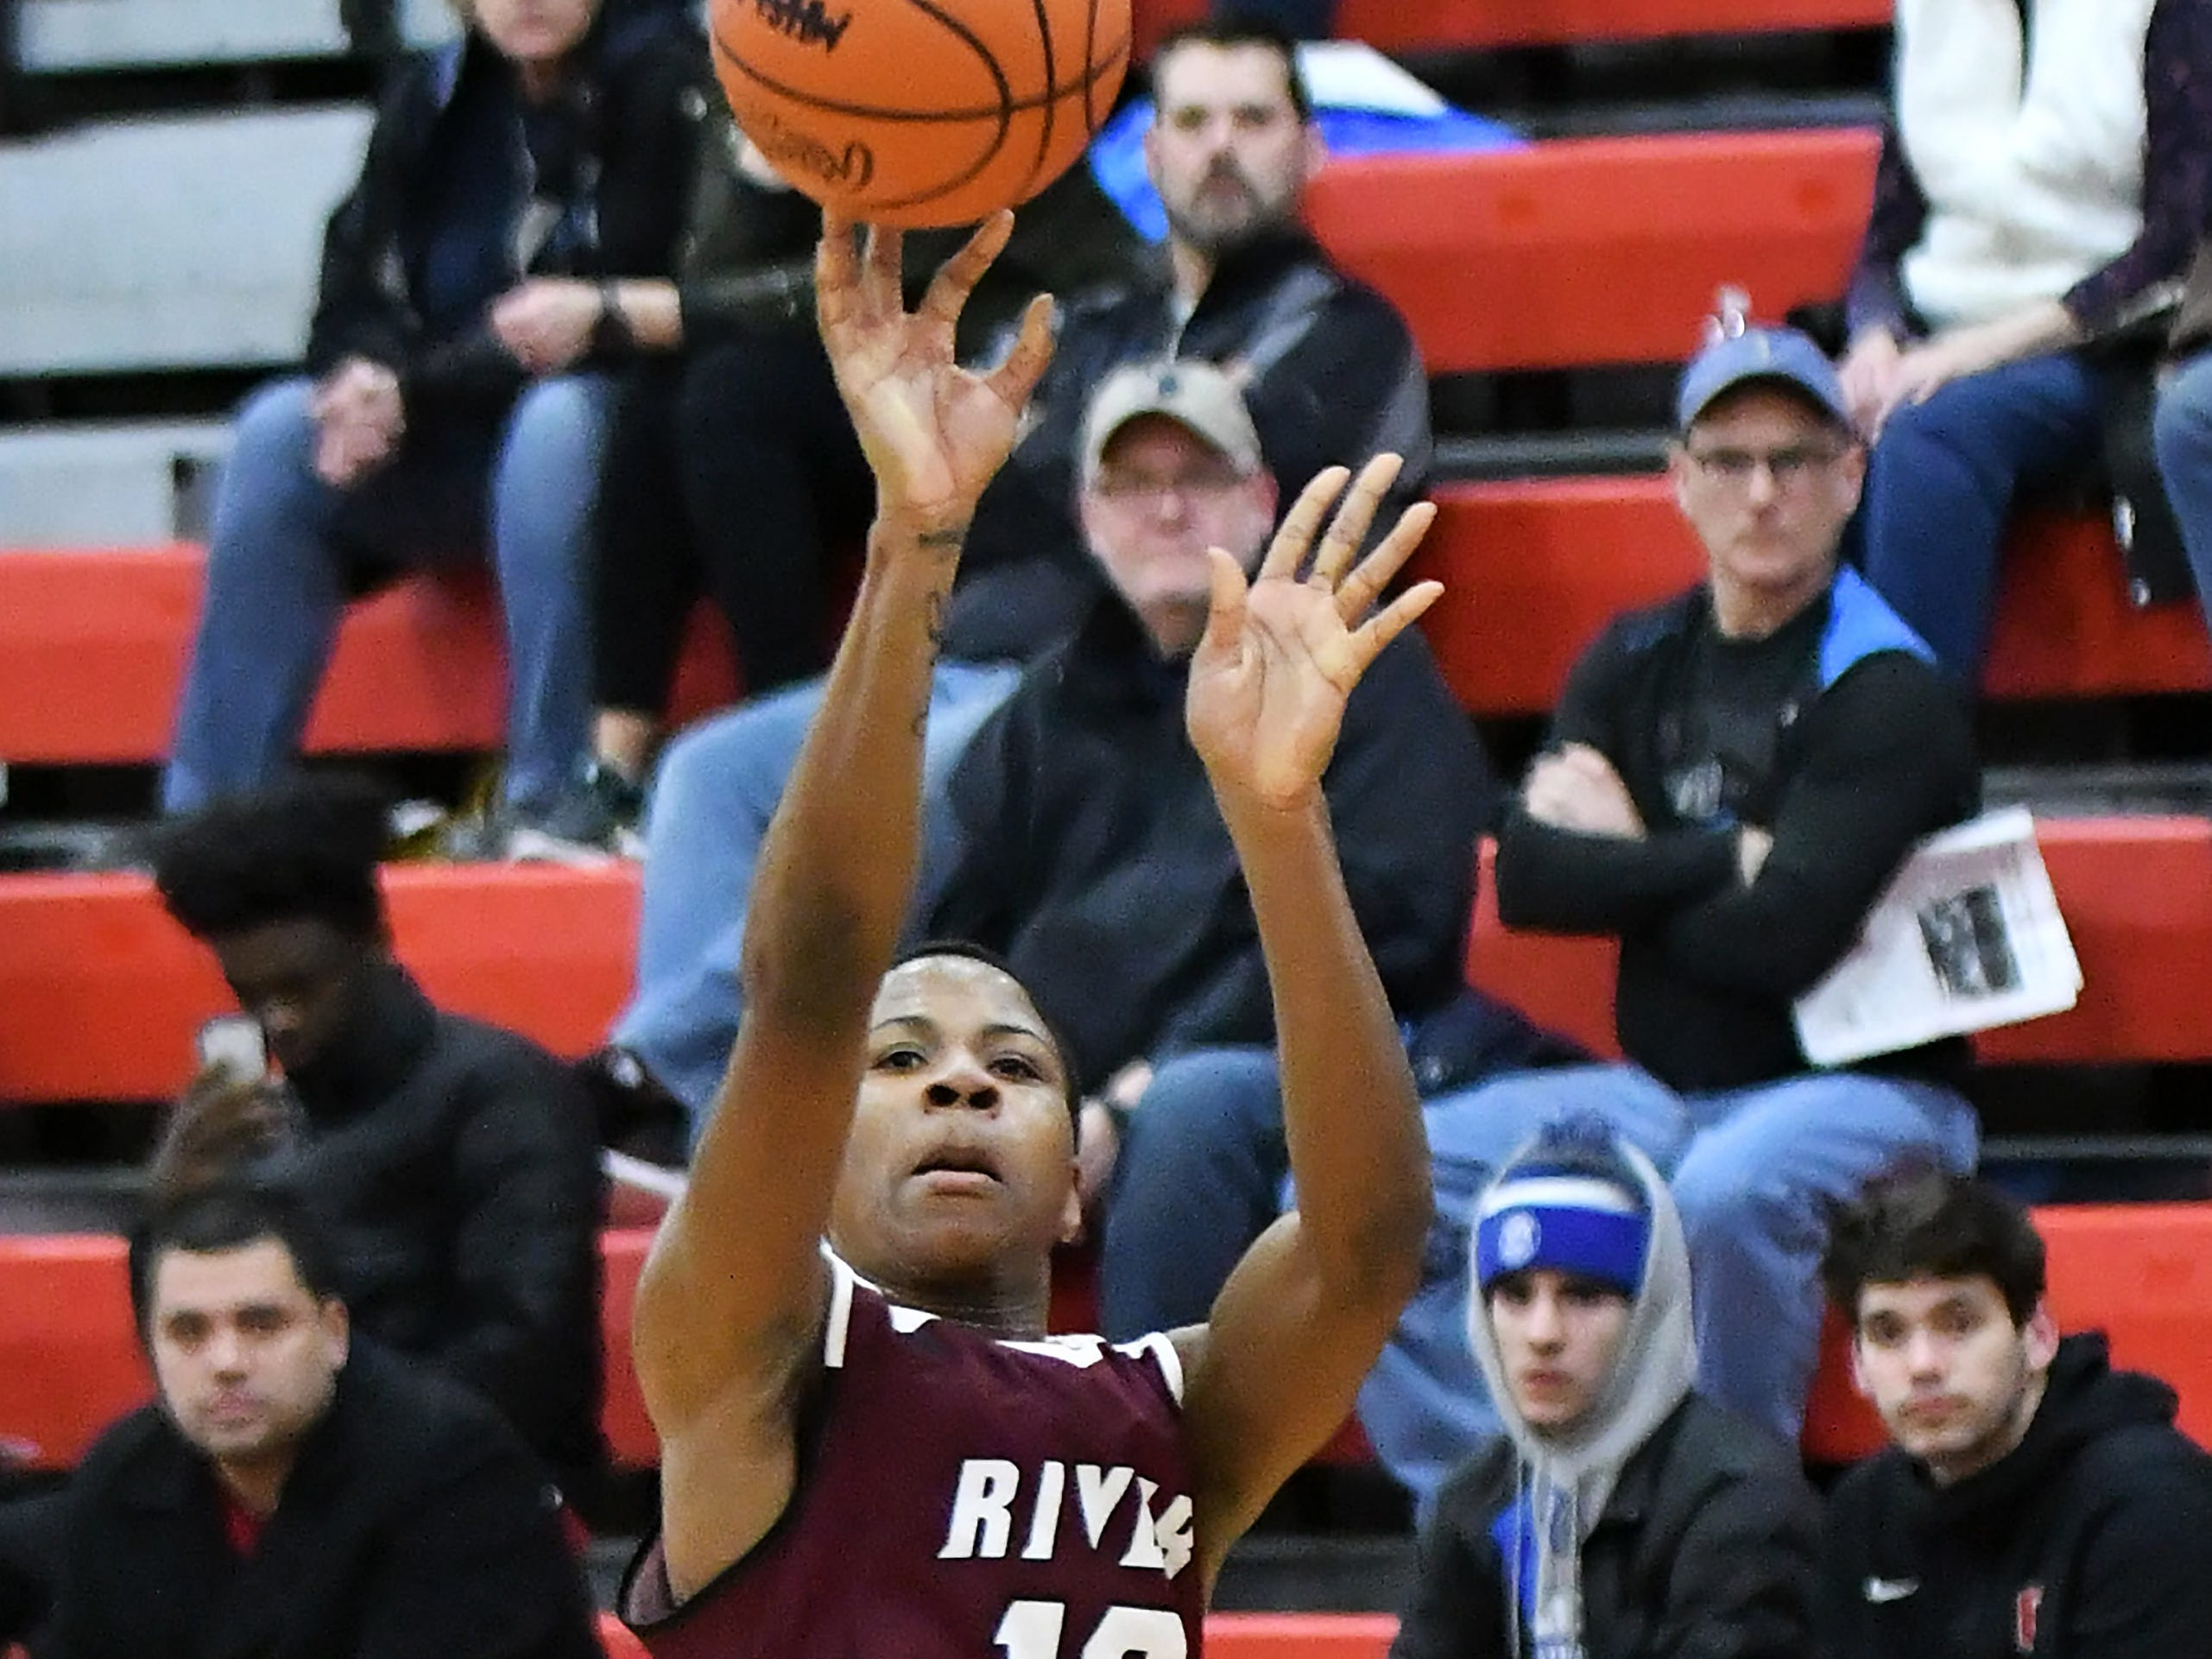 River Rouge's Bralin Toney takes a wide open shot in the first half.